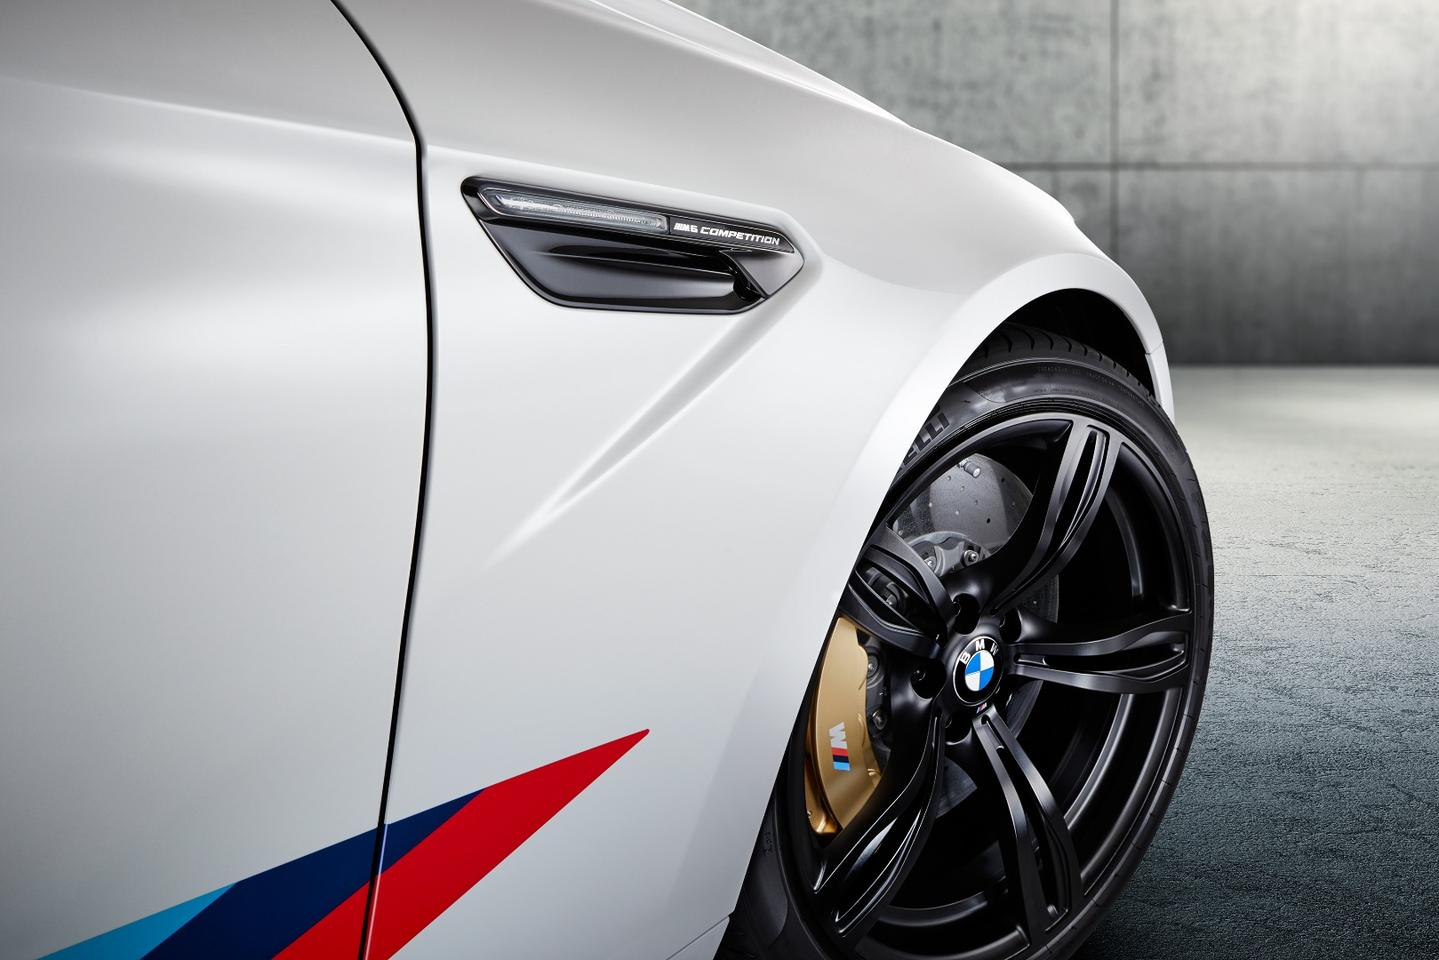 The BMW M6 Coupe Competition Edition is available in Alpine White or Austin Yellow metallic